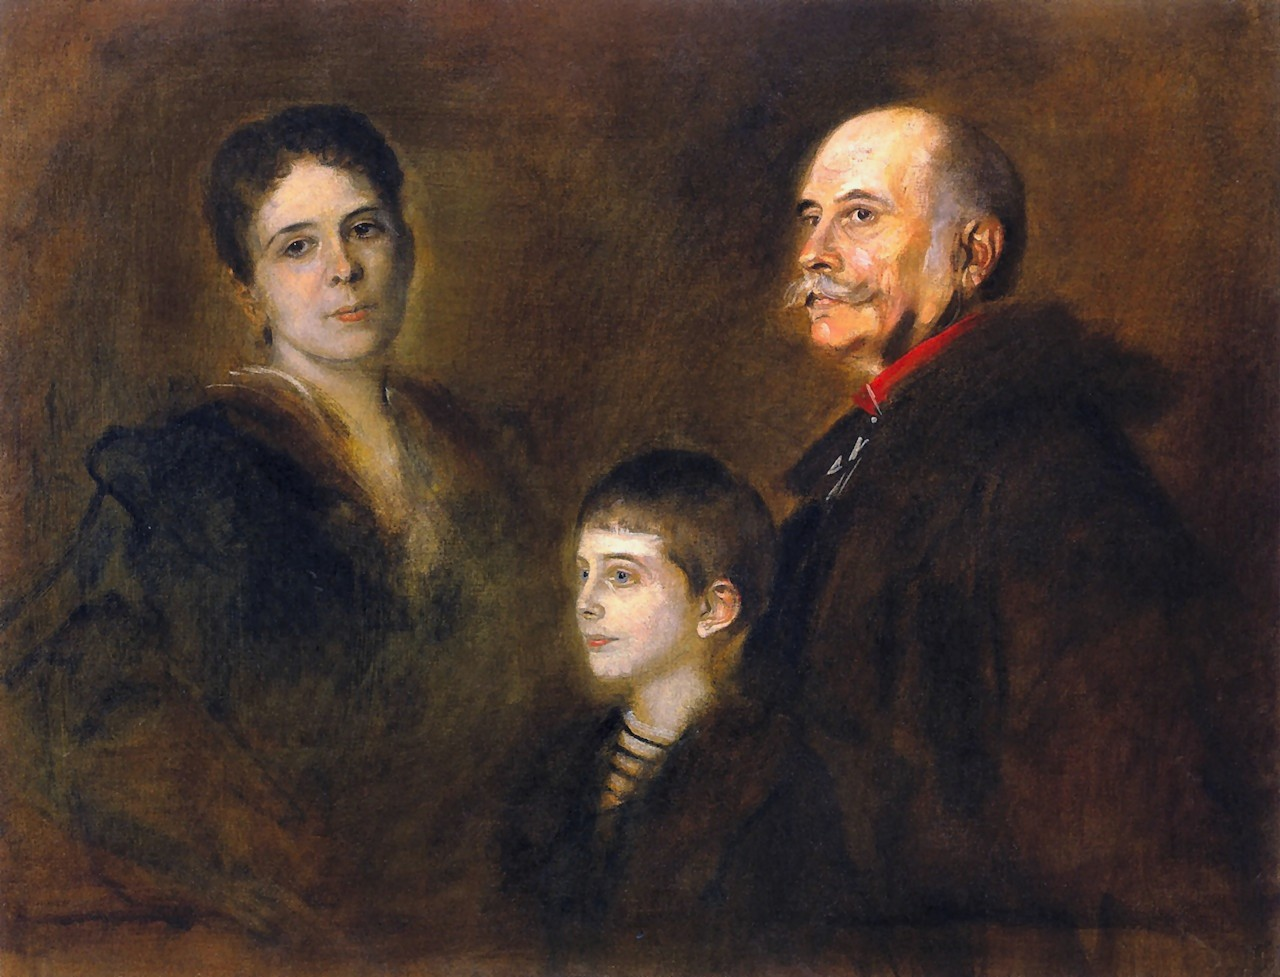 Franz  von  Lenbach  general  von  hartmann  with  wife  and  son